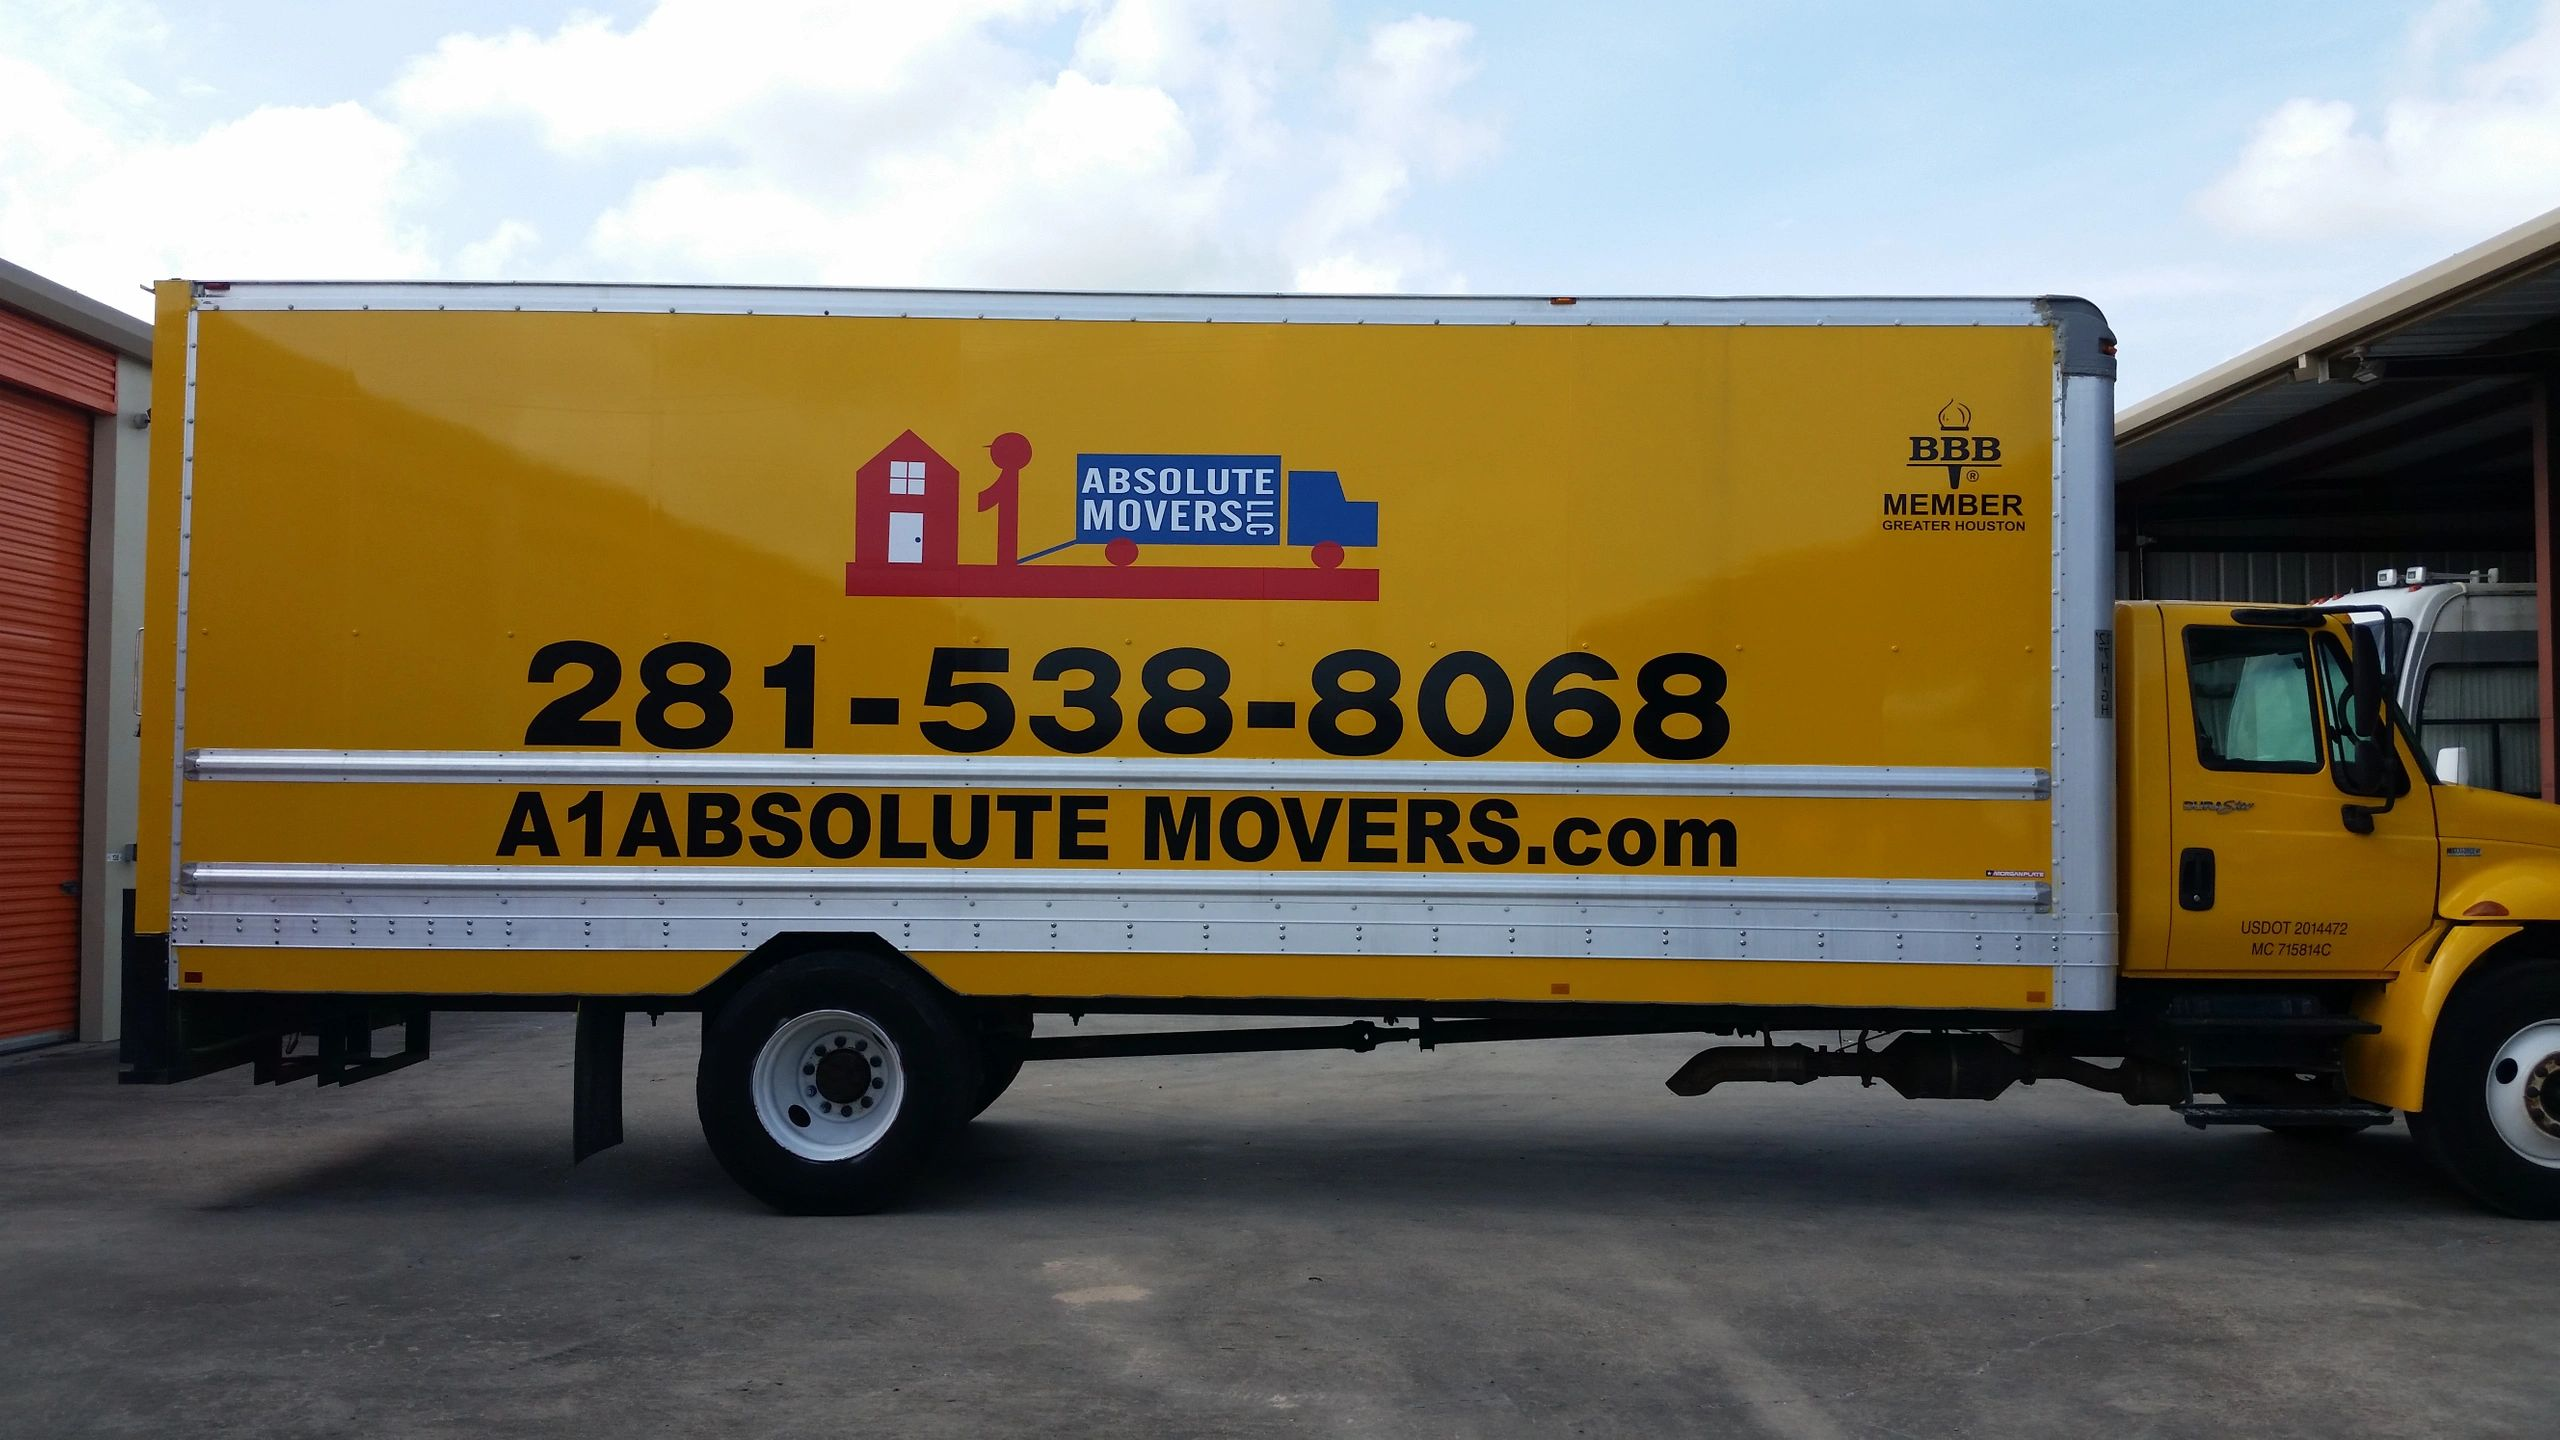 A1 Absolute Movers   Movers Near League City, Movers Near Friendswood